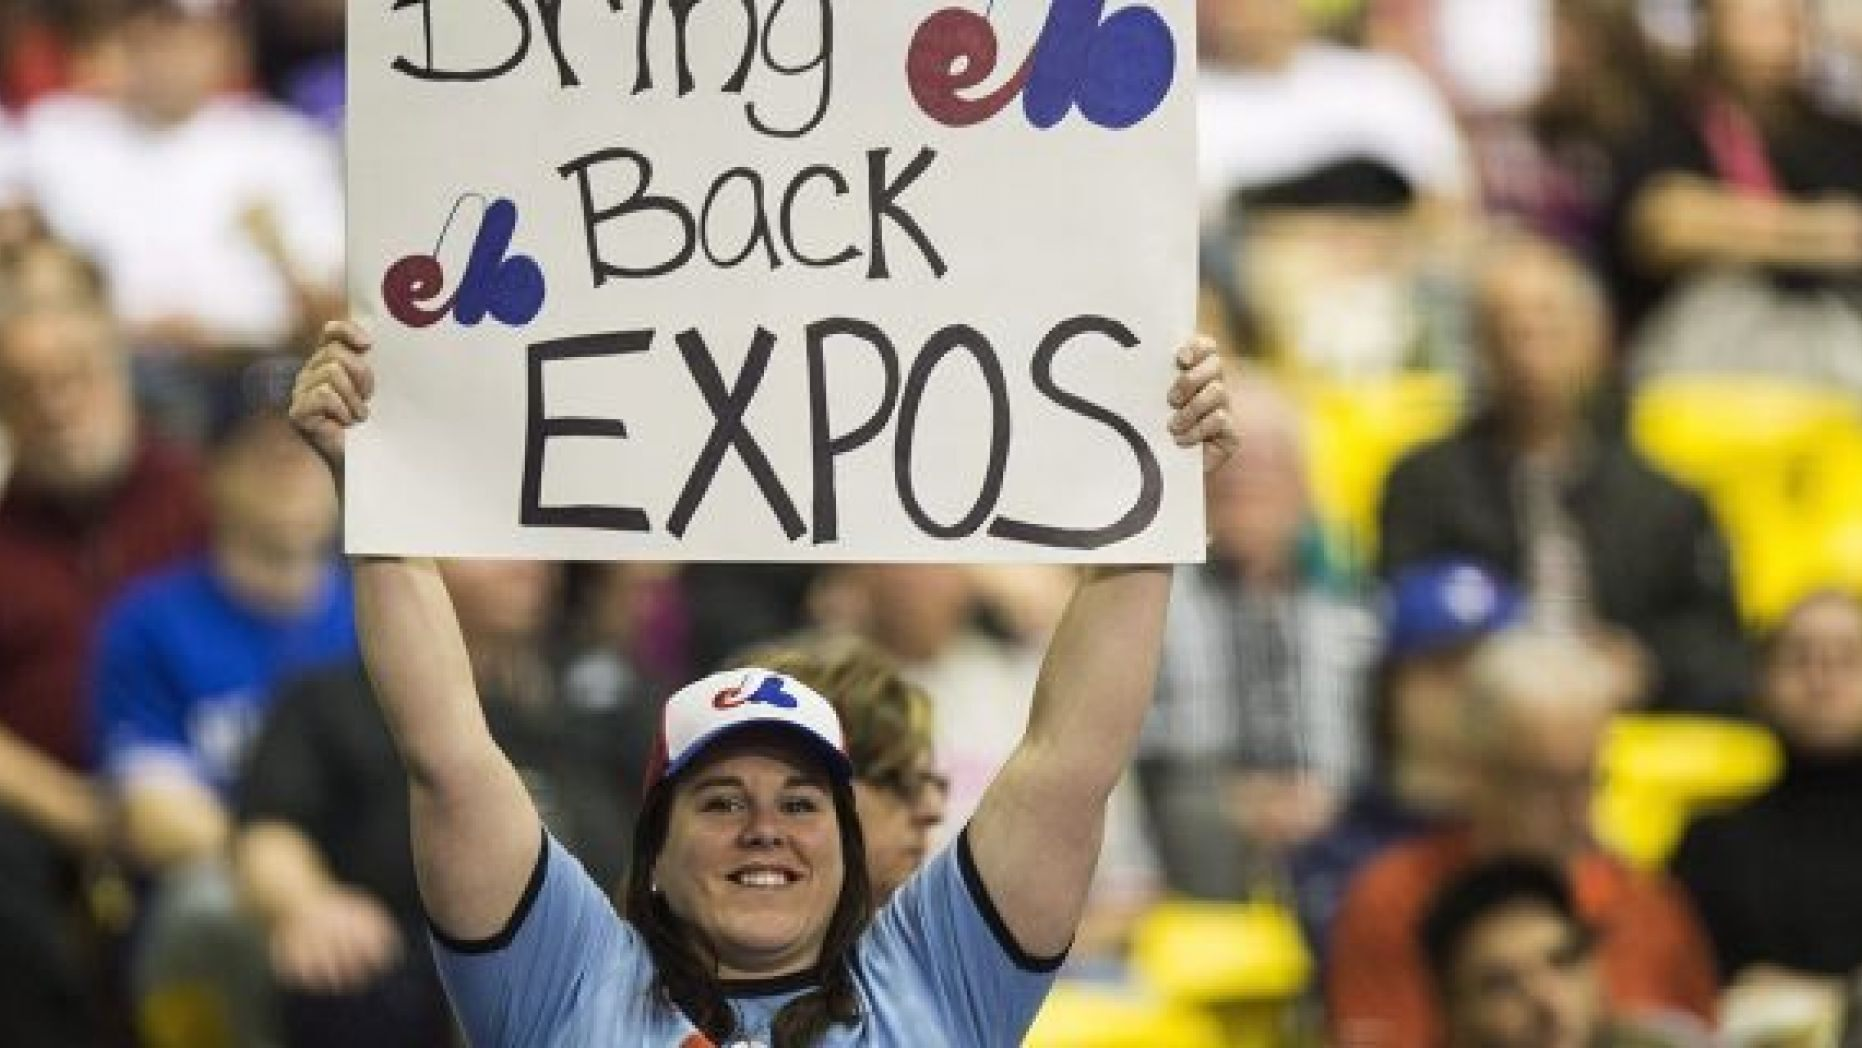 FILE - In this April 3, 2015, file photo, a fan holds up a sign during a pregame ceremony as the Toronto Blue Jays face the Cincinnati Reds in an exhibition baseball game in Montreal <a class=